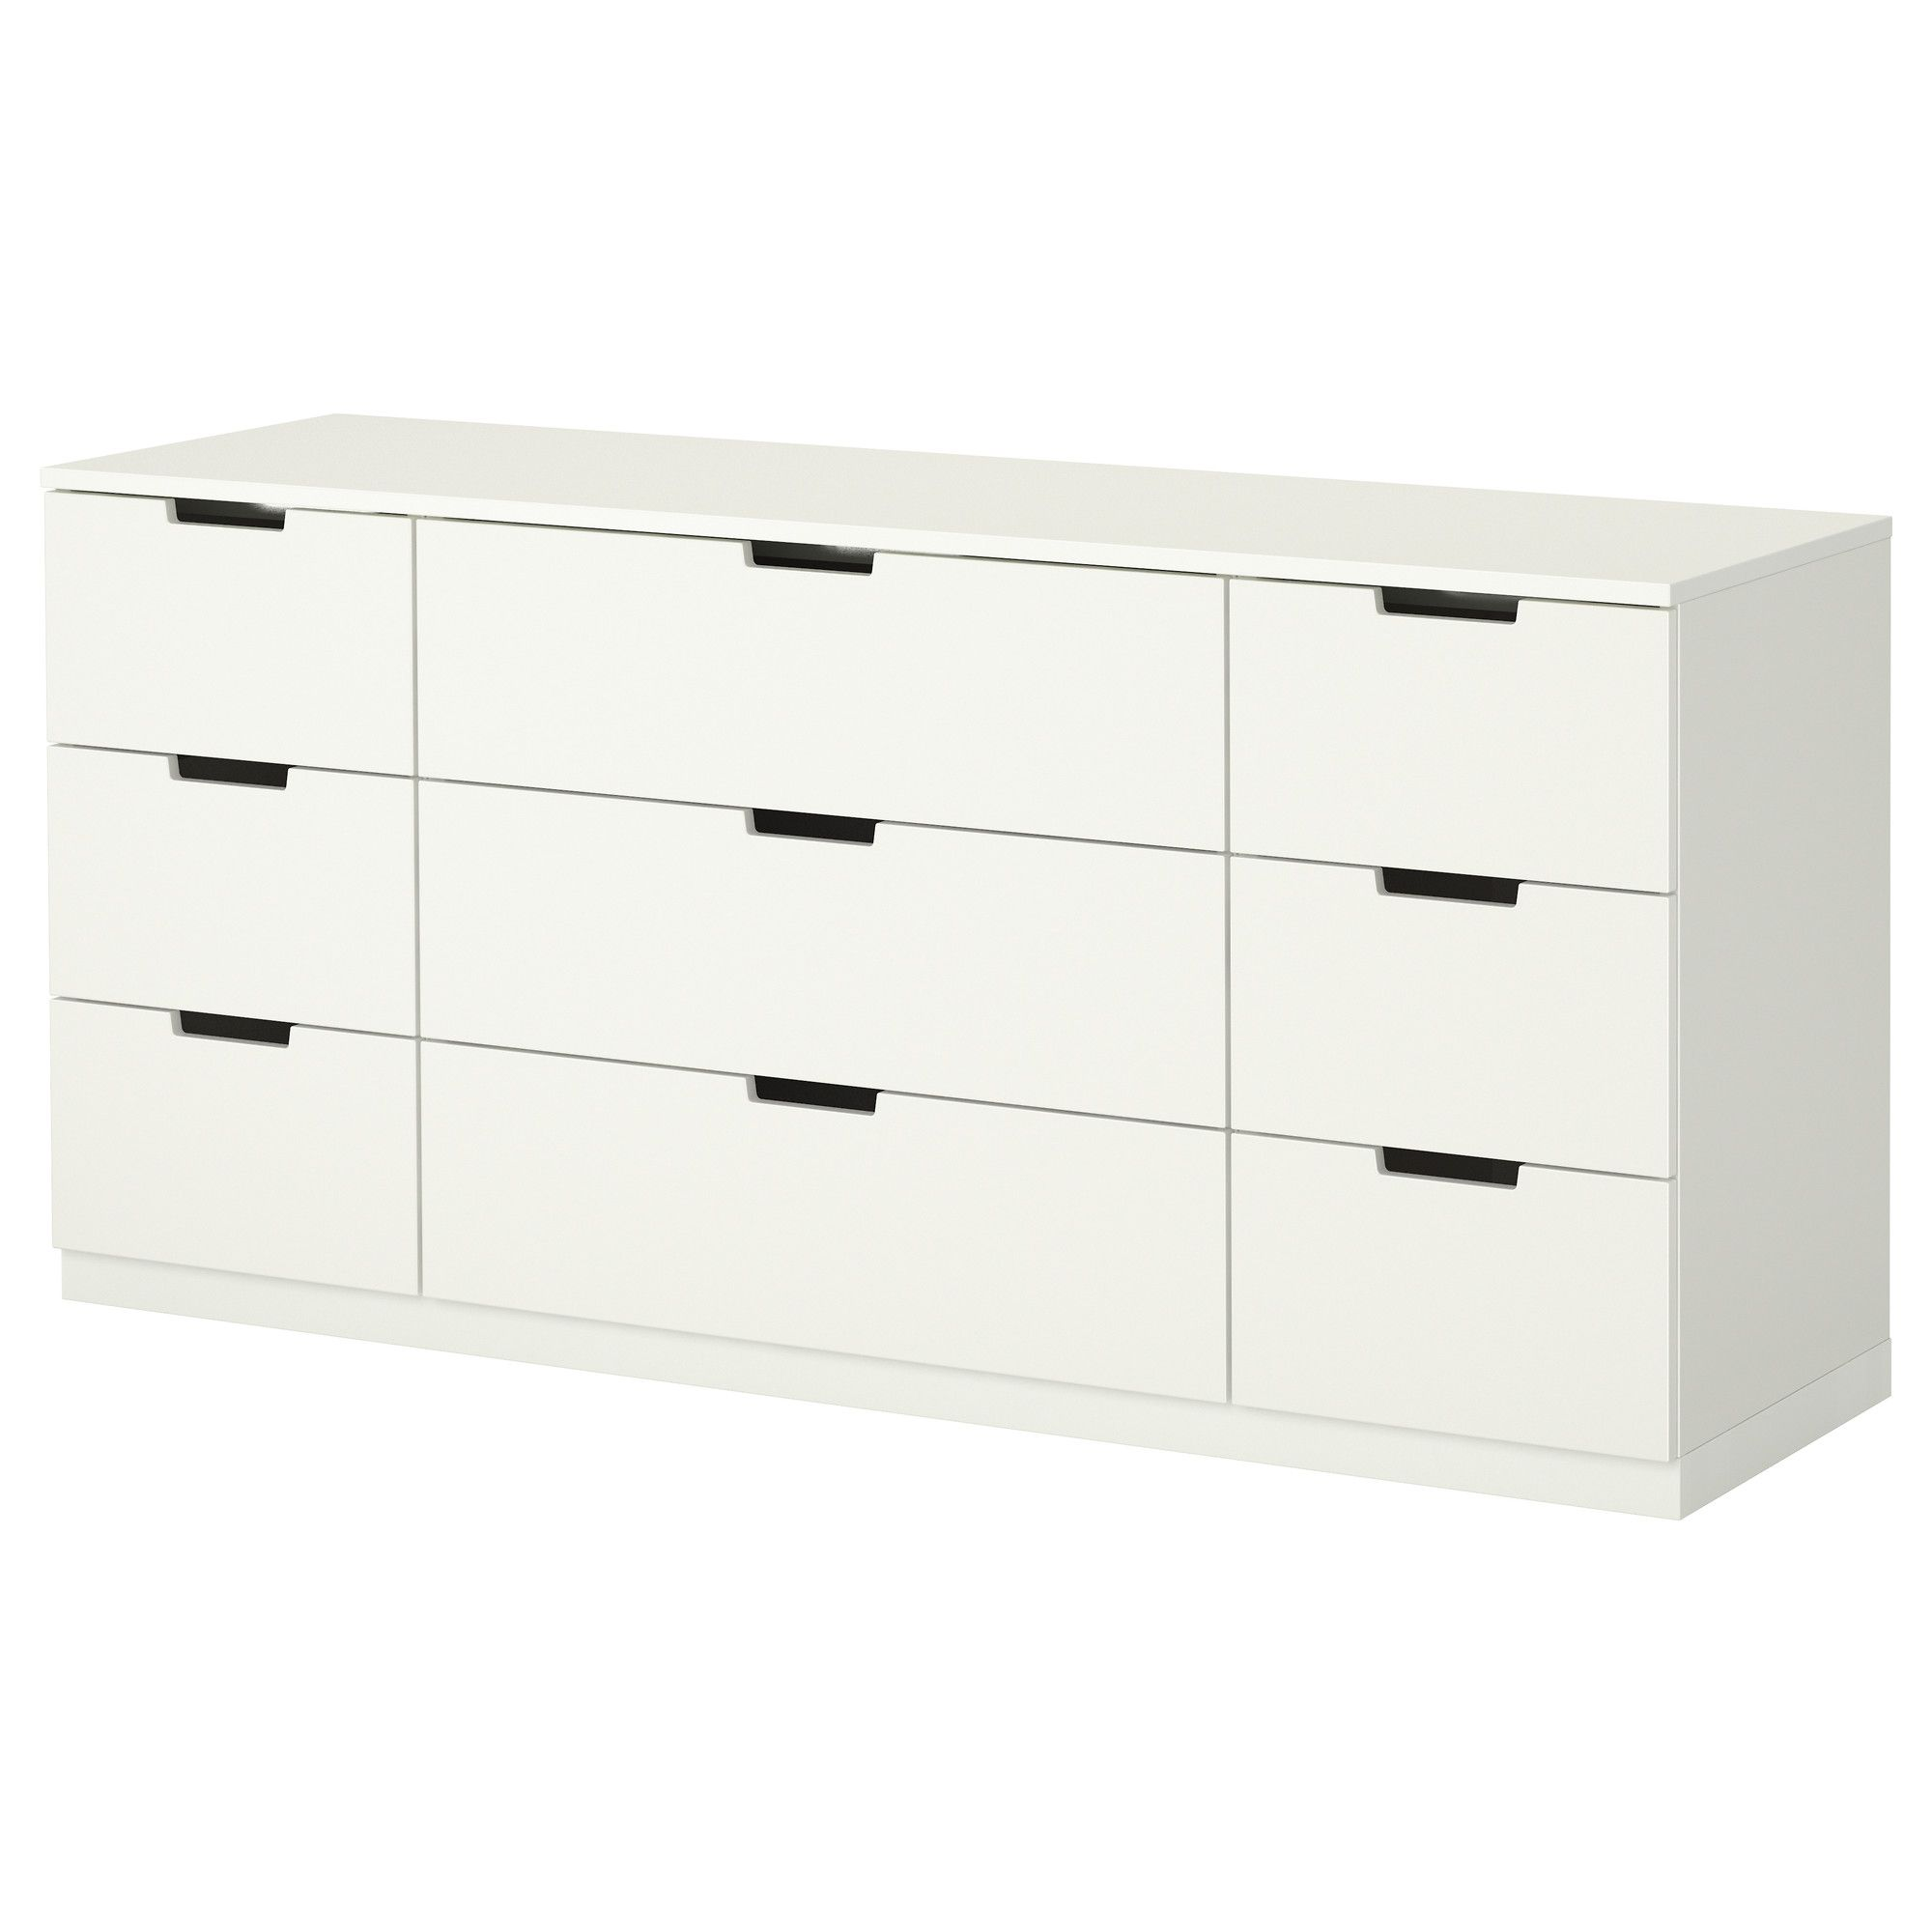 garage full mounted design size large drawers storage layout closet for of chest wall organizers space close cabinet